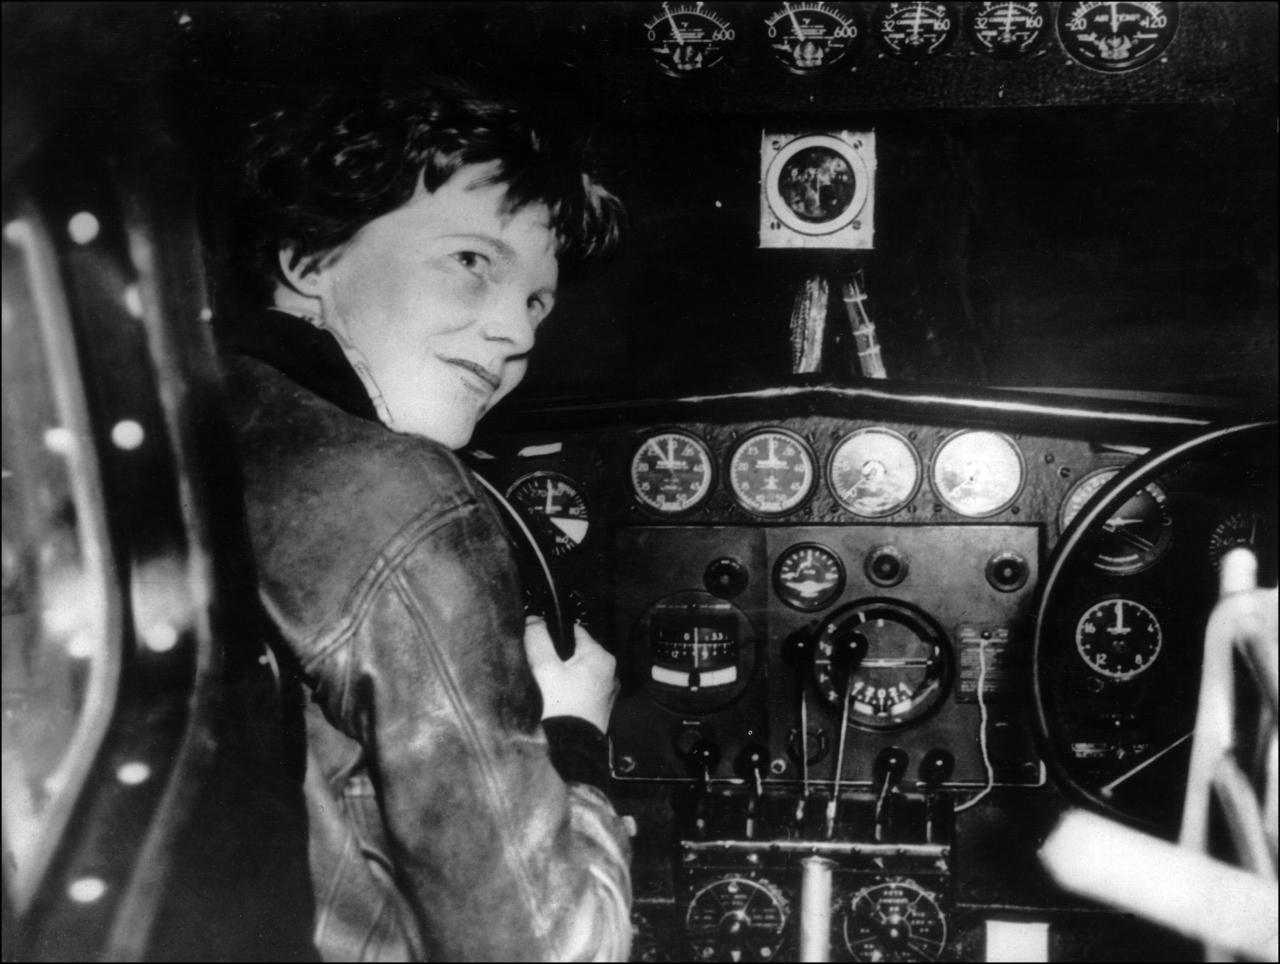 amelia earhart Amelia earhart wasn't afraid to break down barriers in 1928, she was the first woman to fly as a passenger across the atlantic ocean then, in 1932, she became the first woman to pilot a plane across that ocean there weren't many female pilots back then, and her actions inspired other women to follow their dreams.